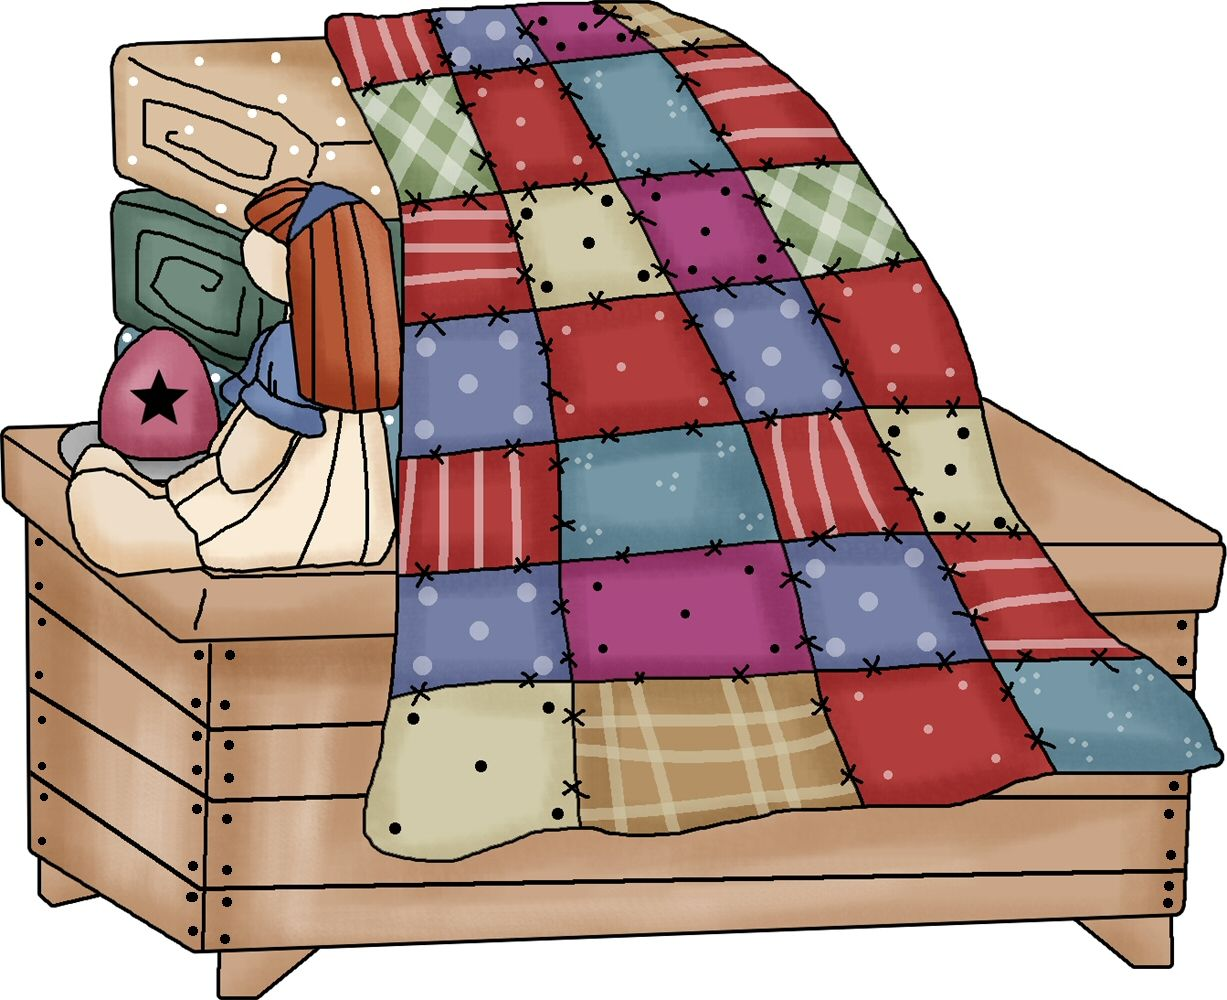 clipart quilt - Google Search | Quilt sketches | Pinterest ...